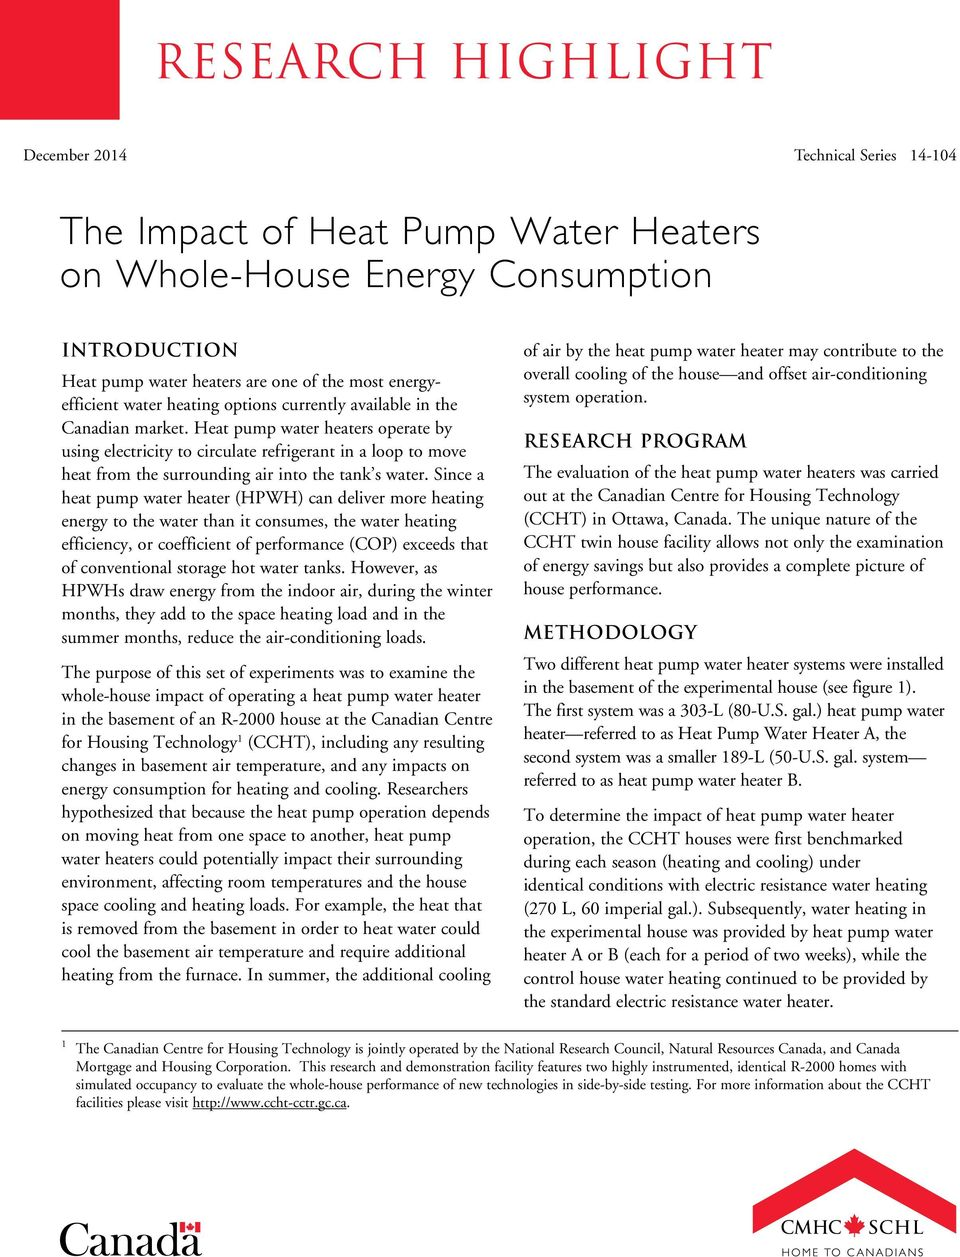 Heat pump water heaters operate by using electricity to circulate refrigerant in a loop to move heat from the surrounding air into the tank s water.